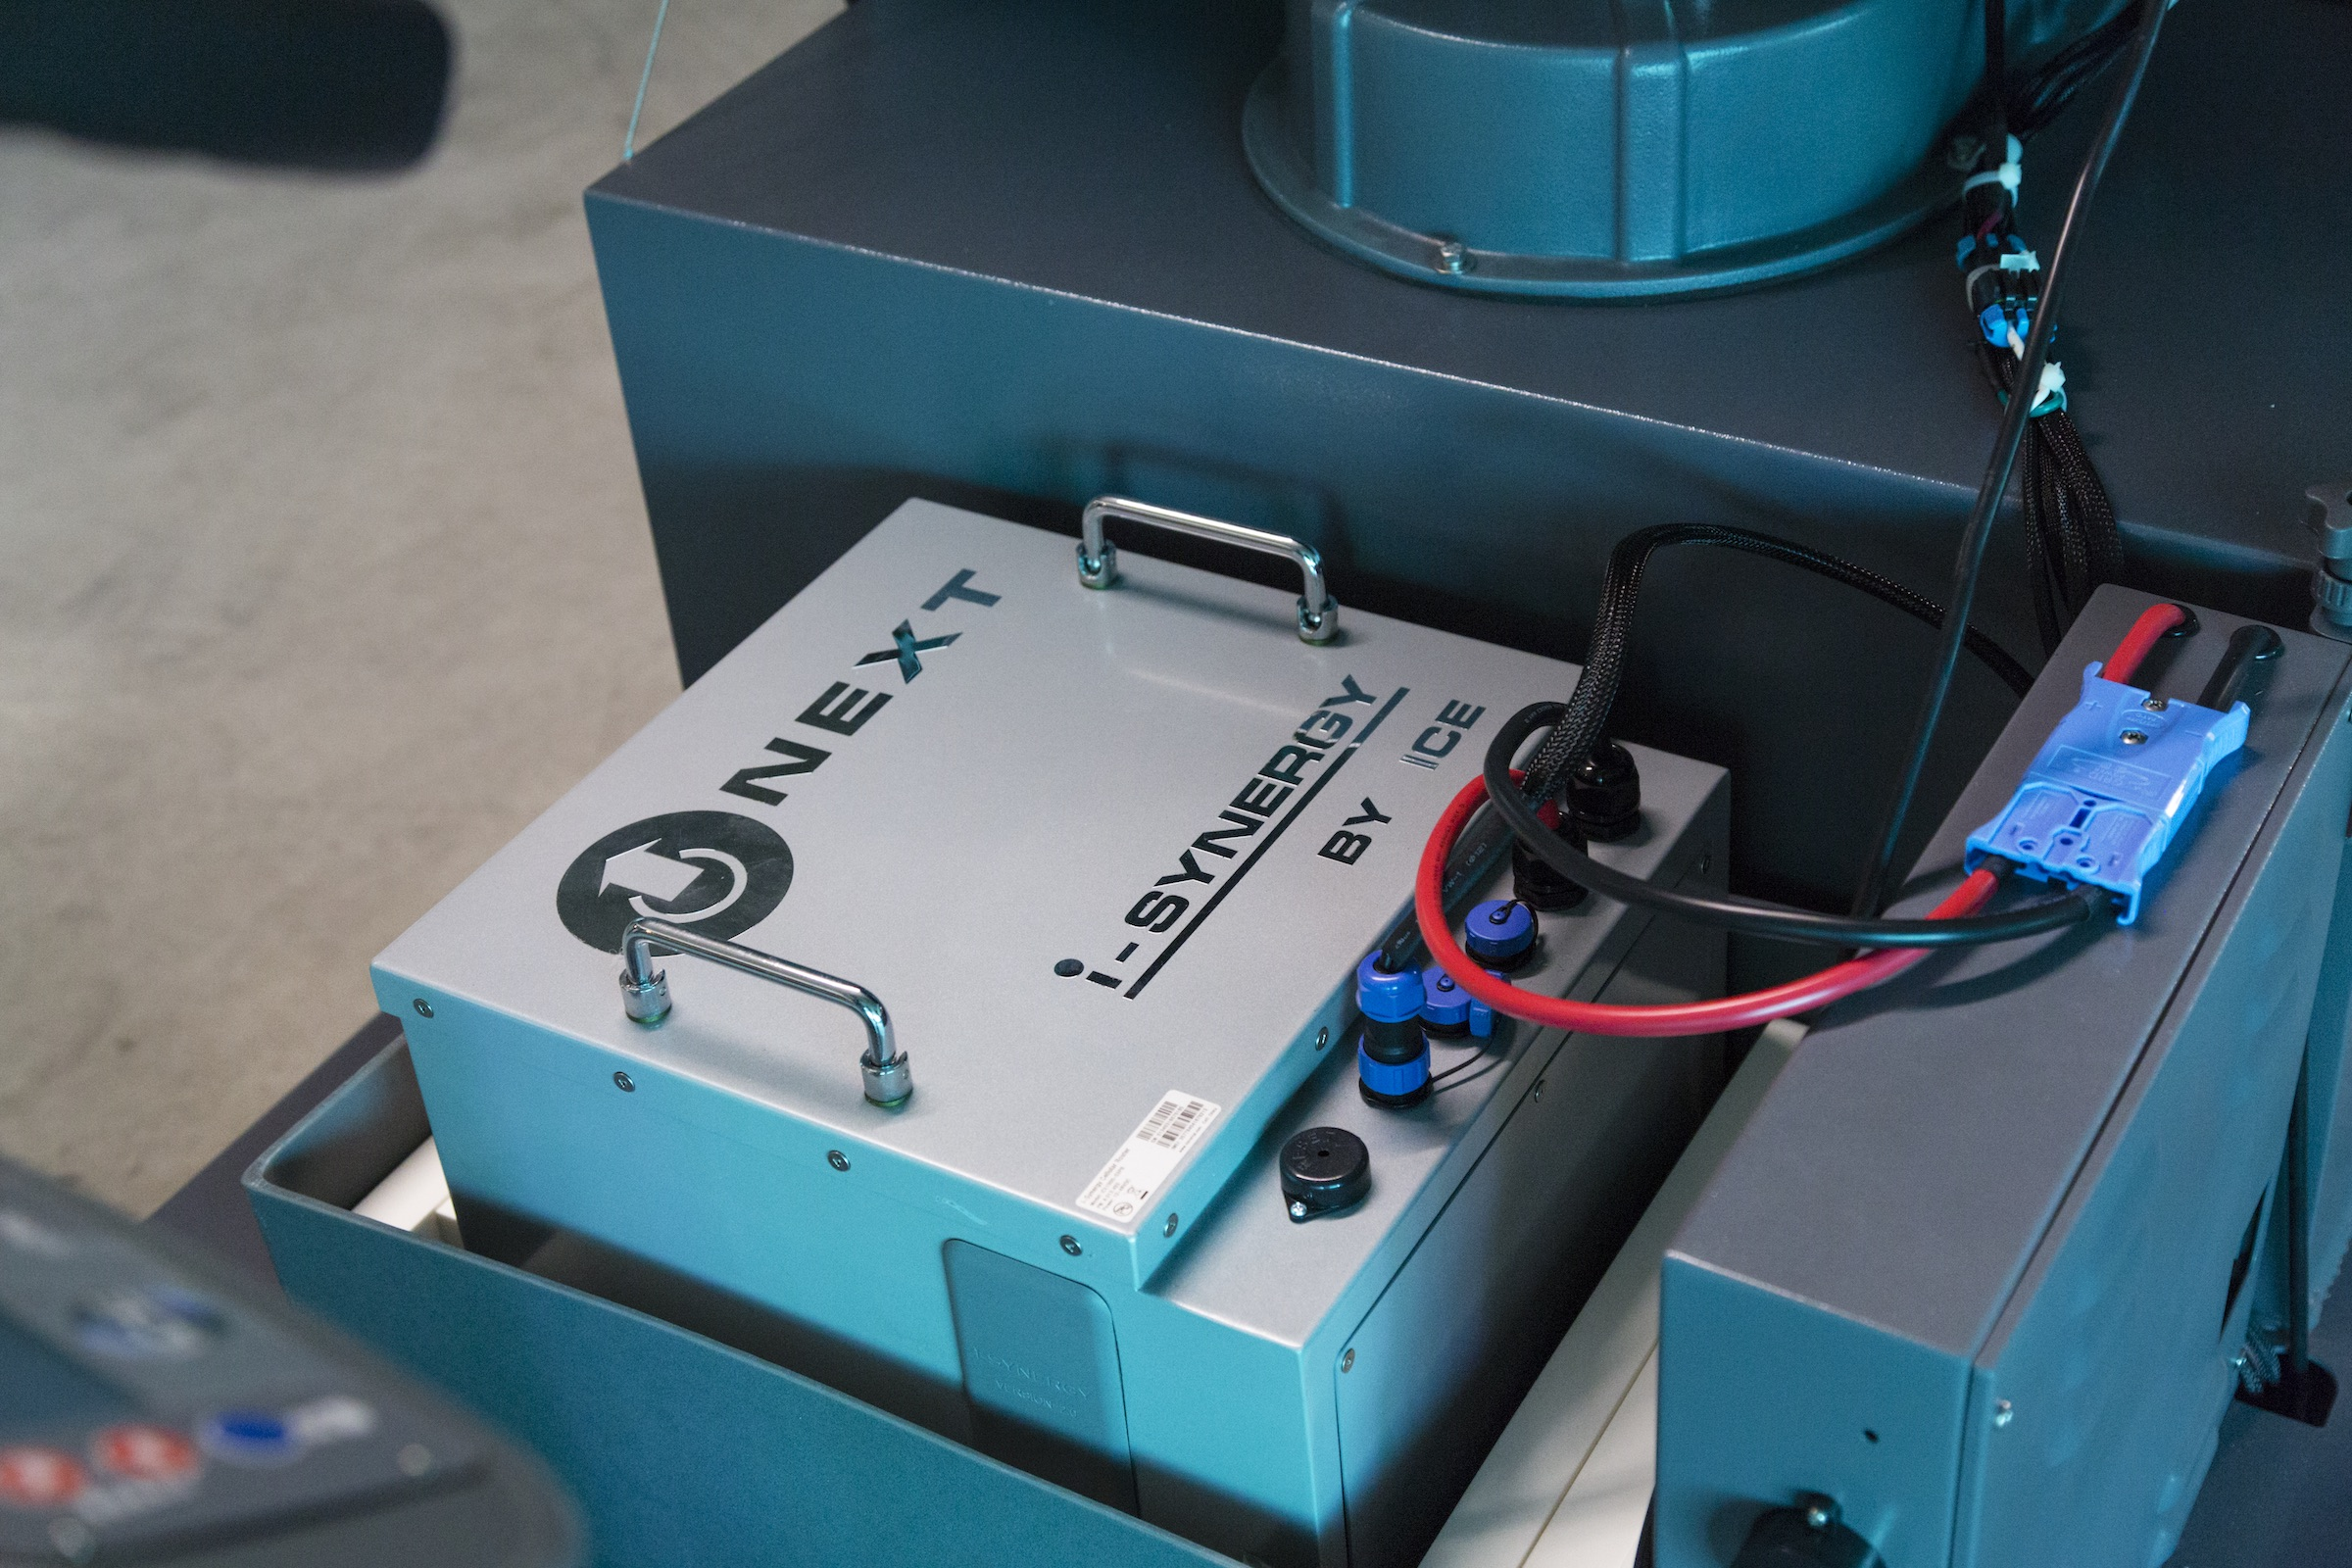 Why You Should Use Cleaning Equipment with Lithium-Ion Batteries